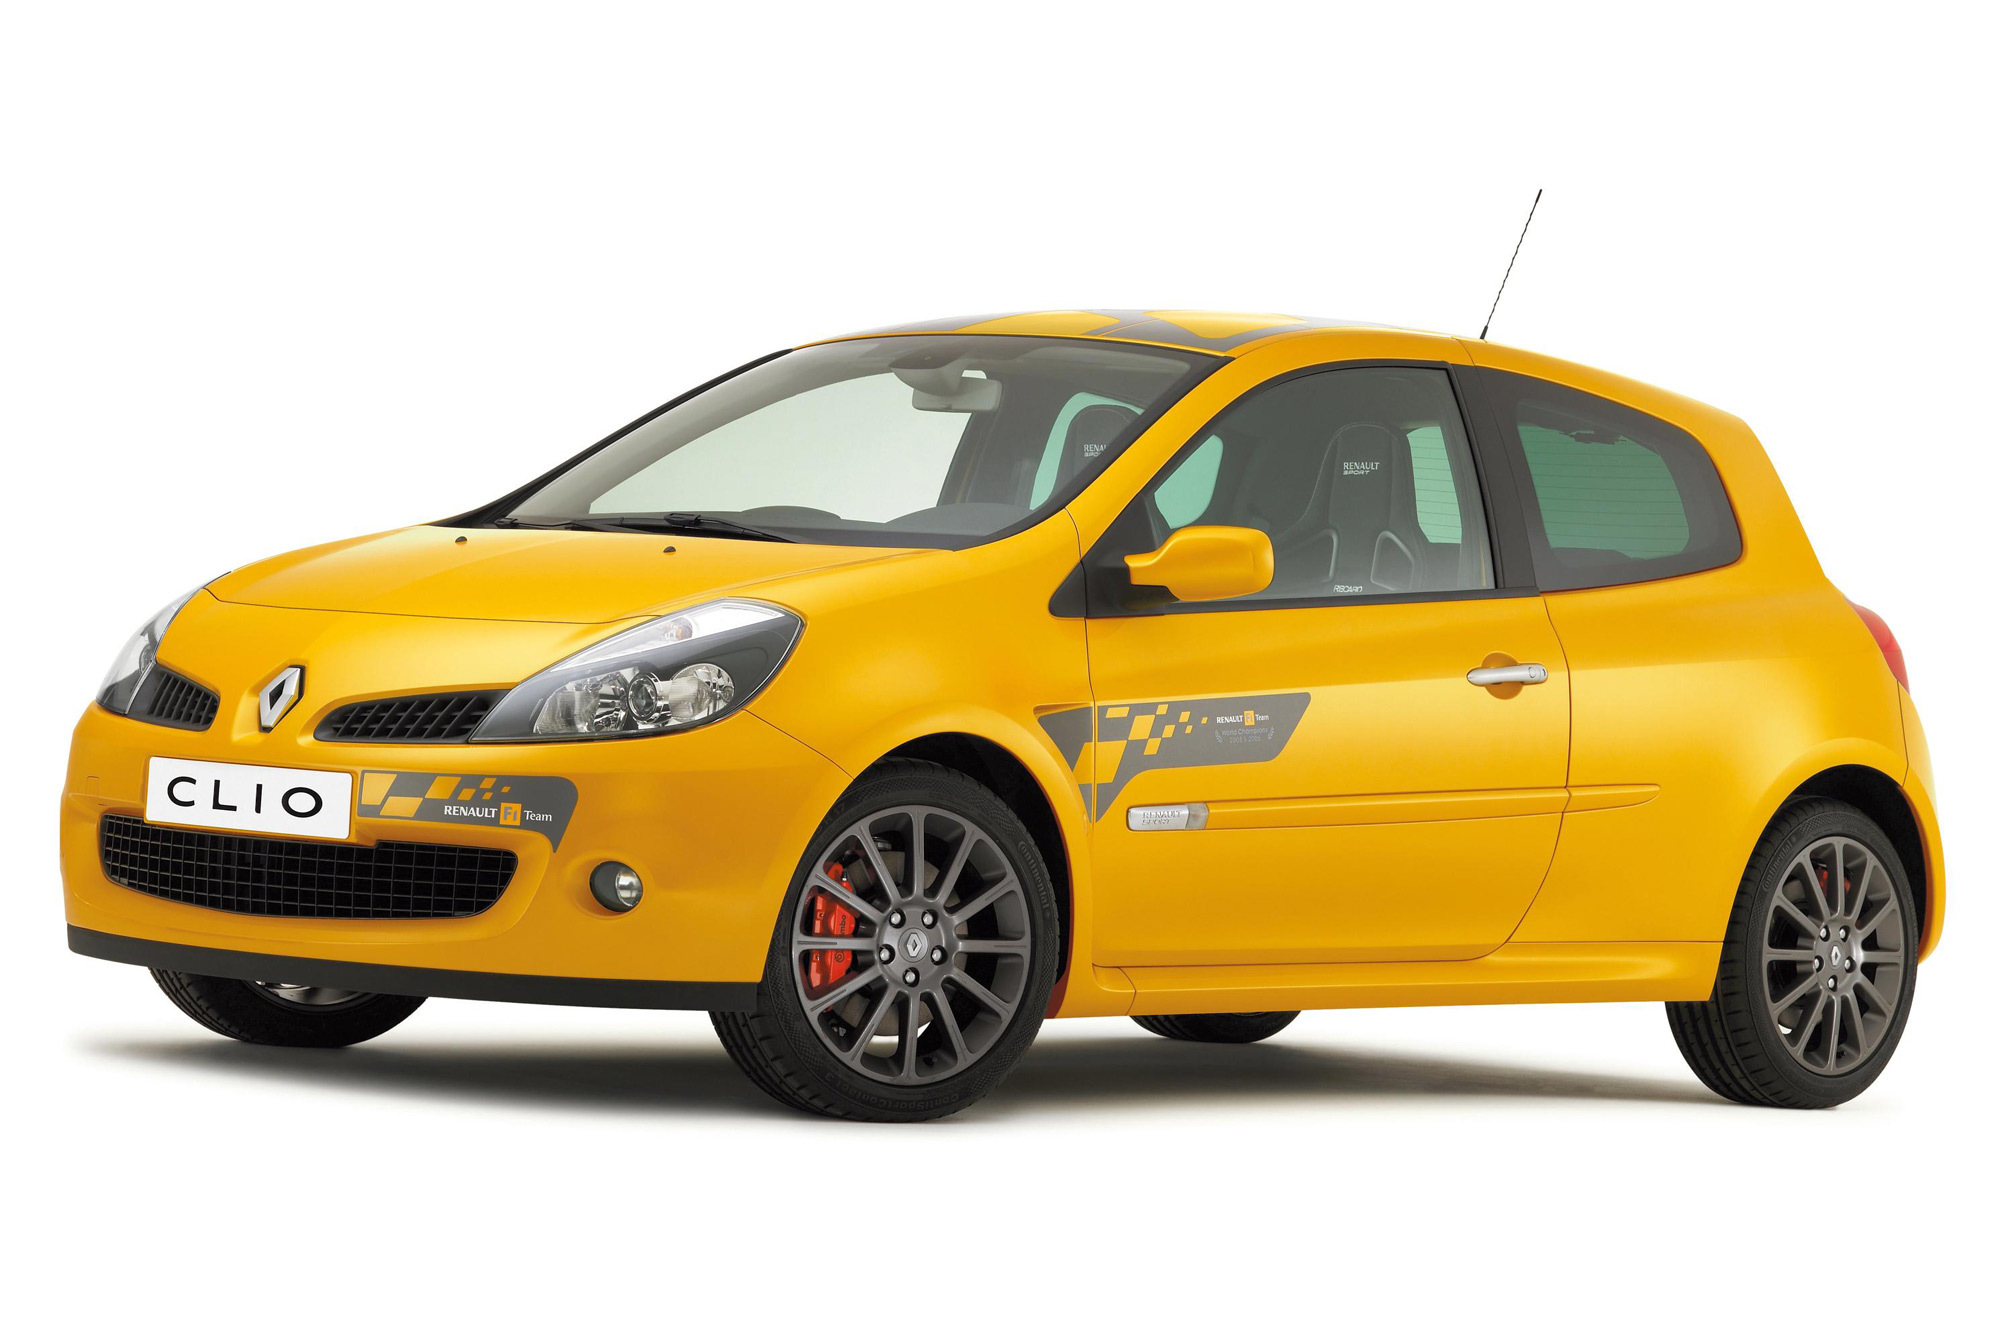 2009 renault clio iii sport pictures information and specs auto. Black Bedroom Furniture Sets. Home Design Ideas